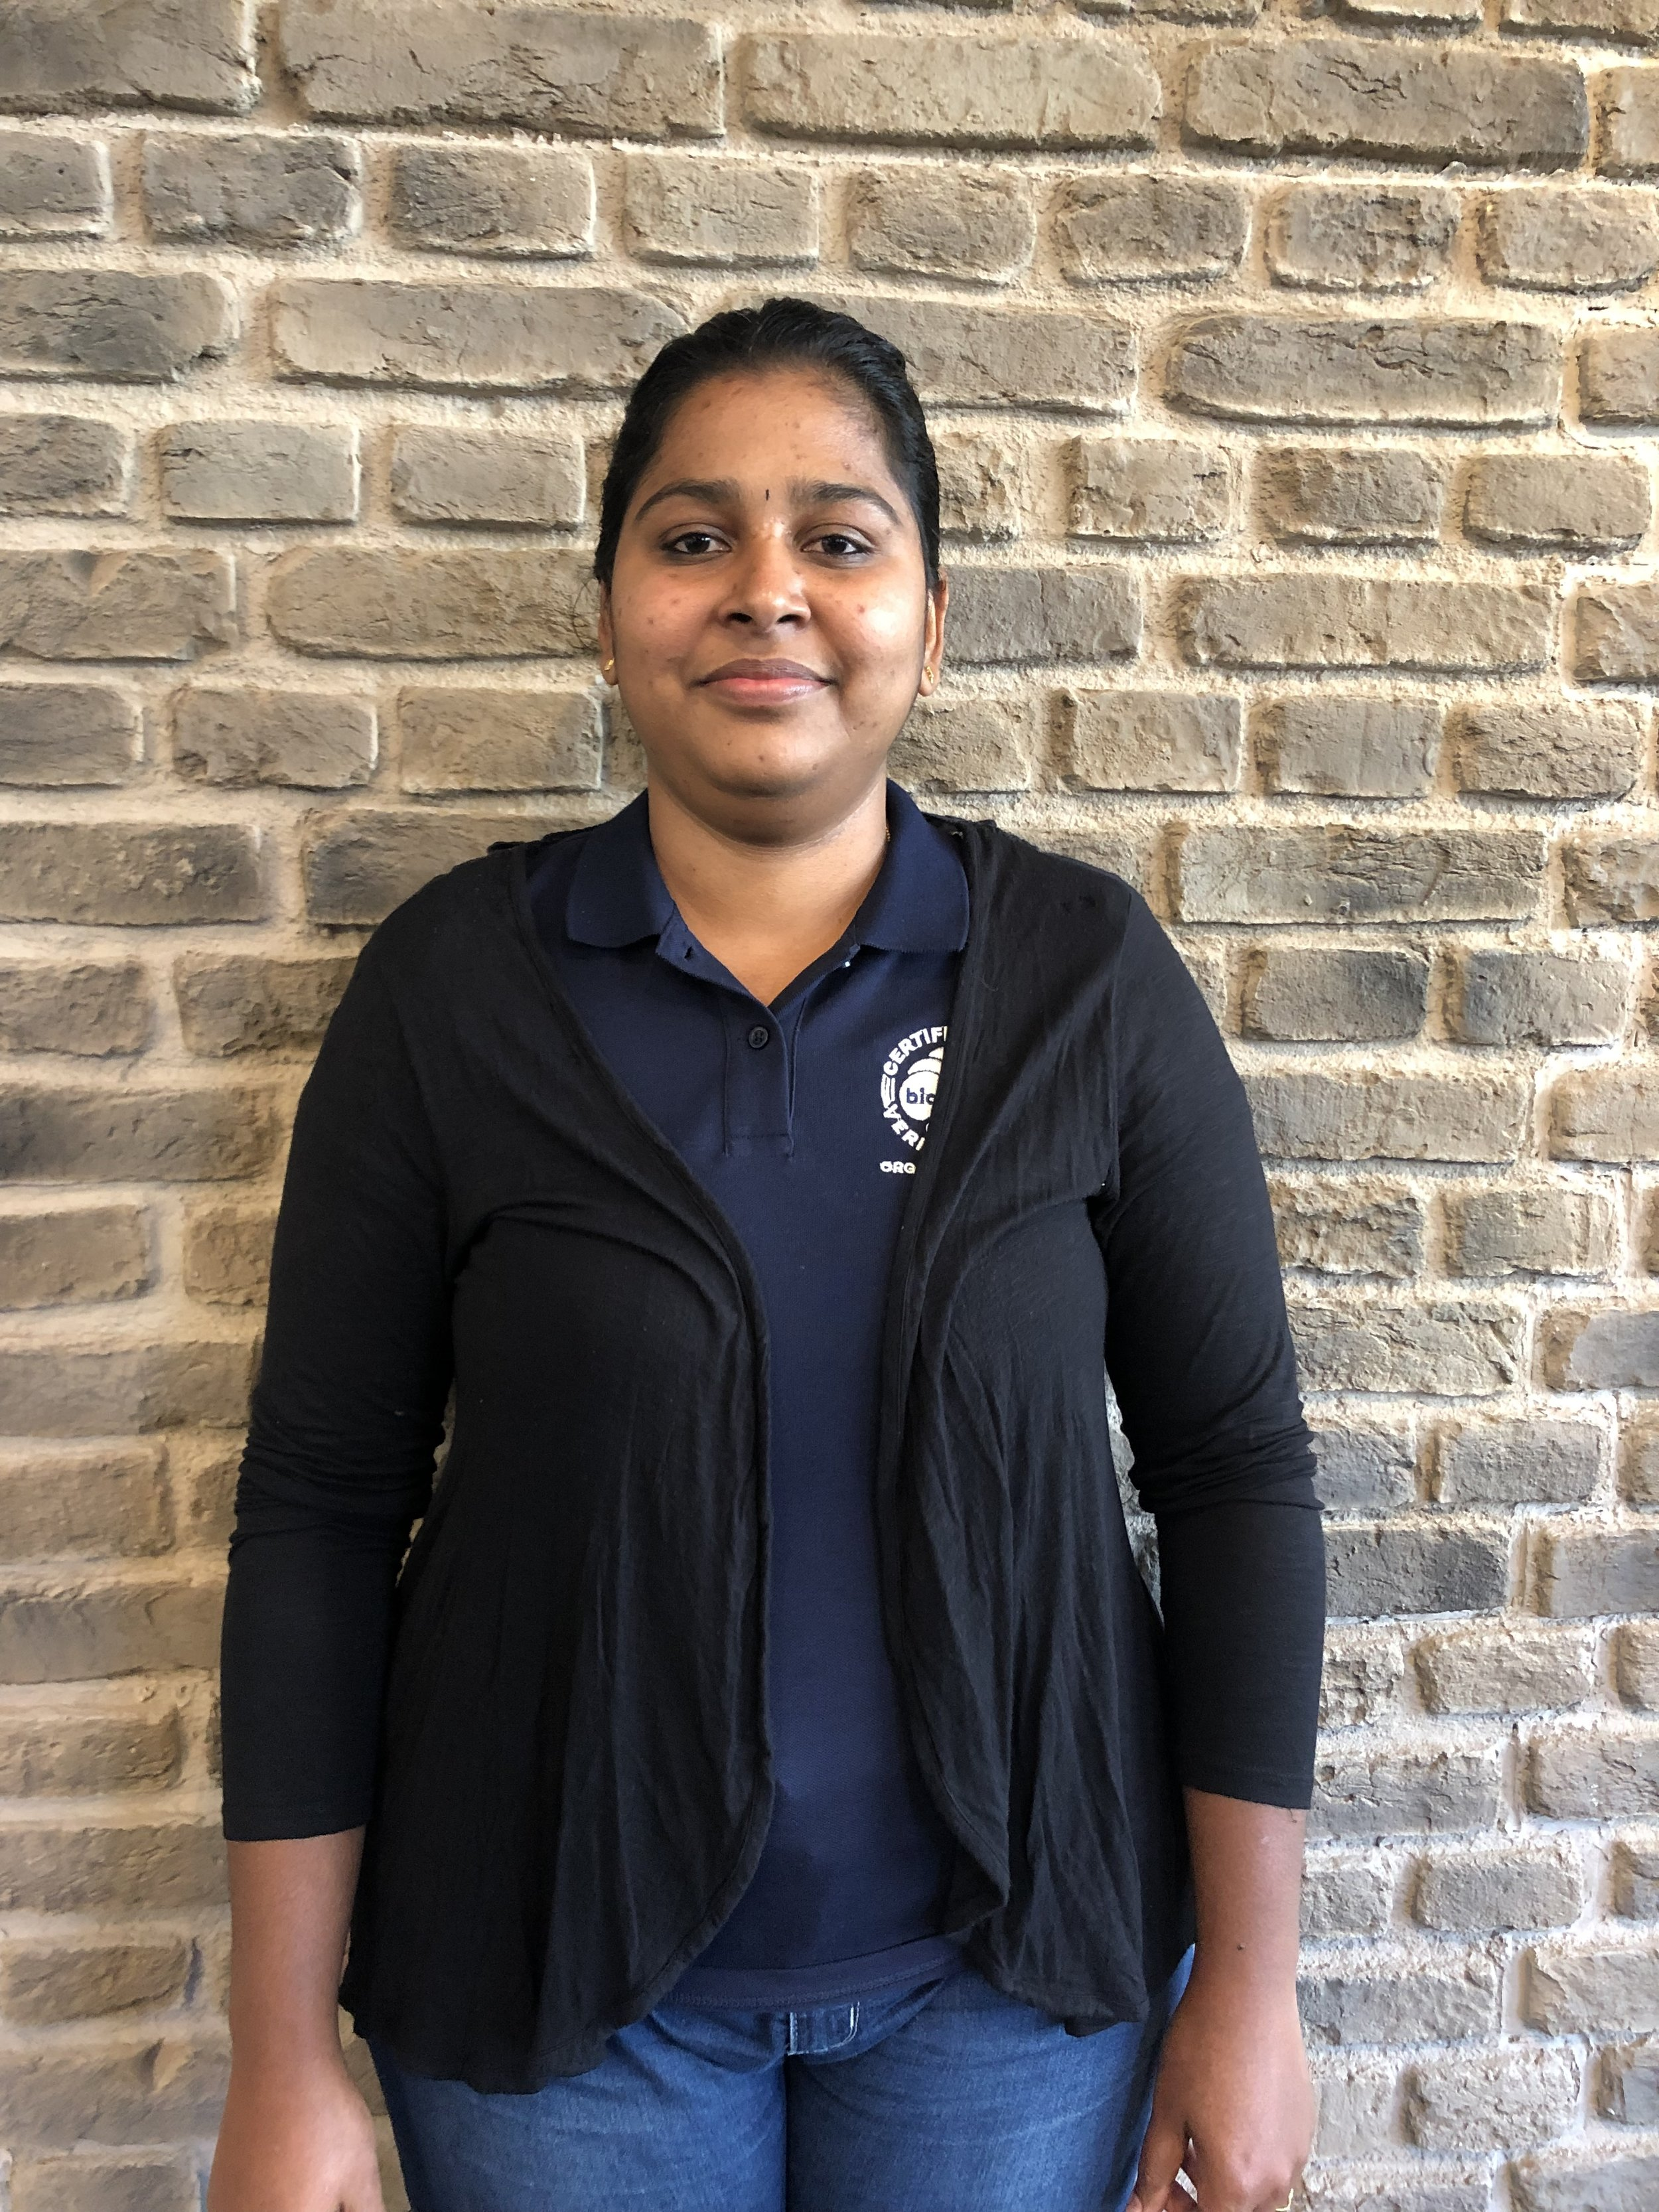 Tamila Eswaramurthy, Certification Officer